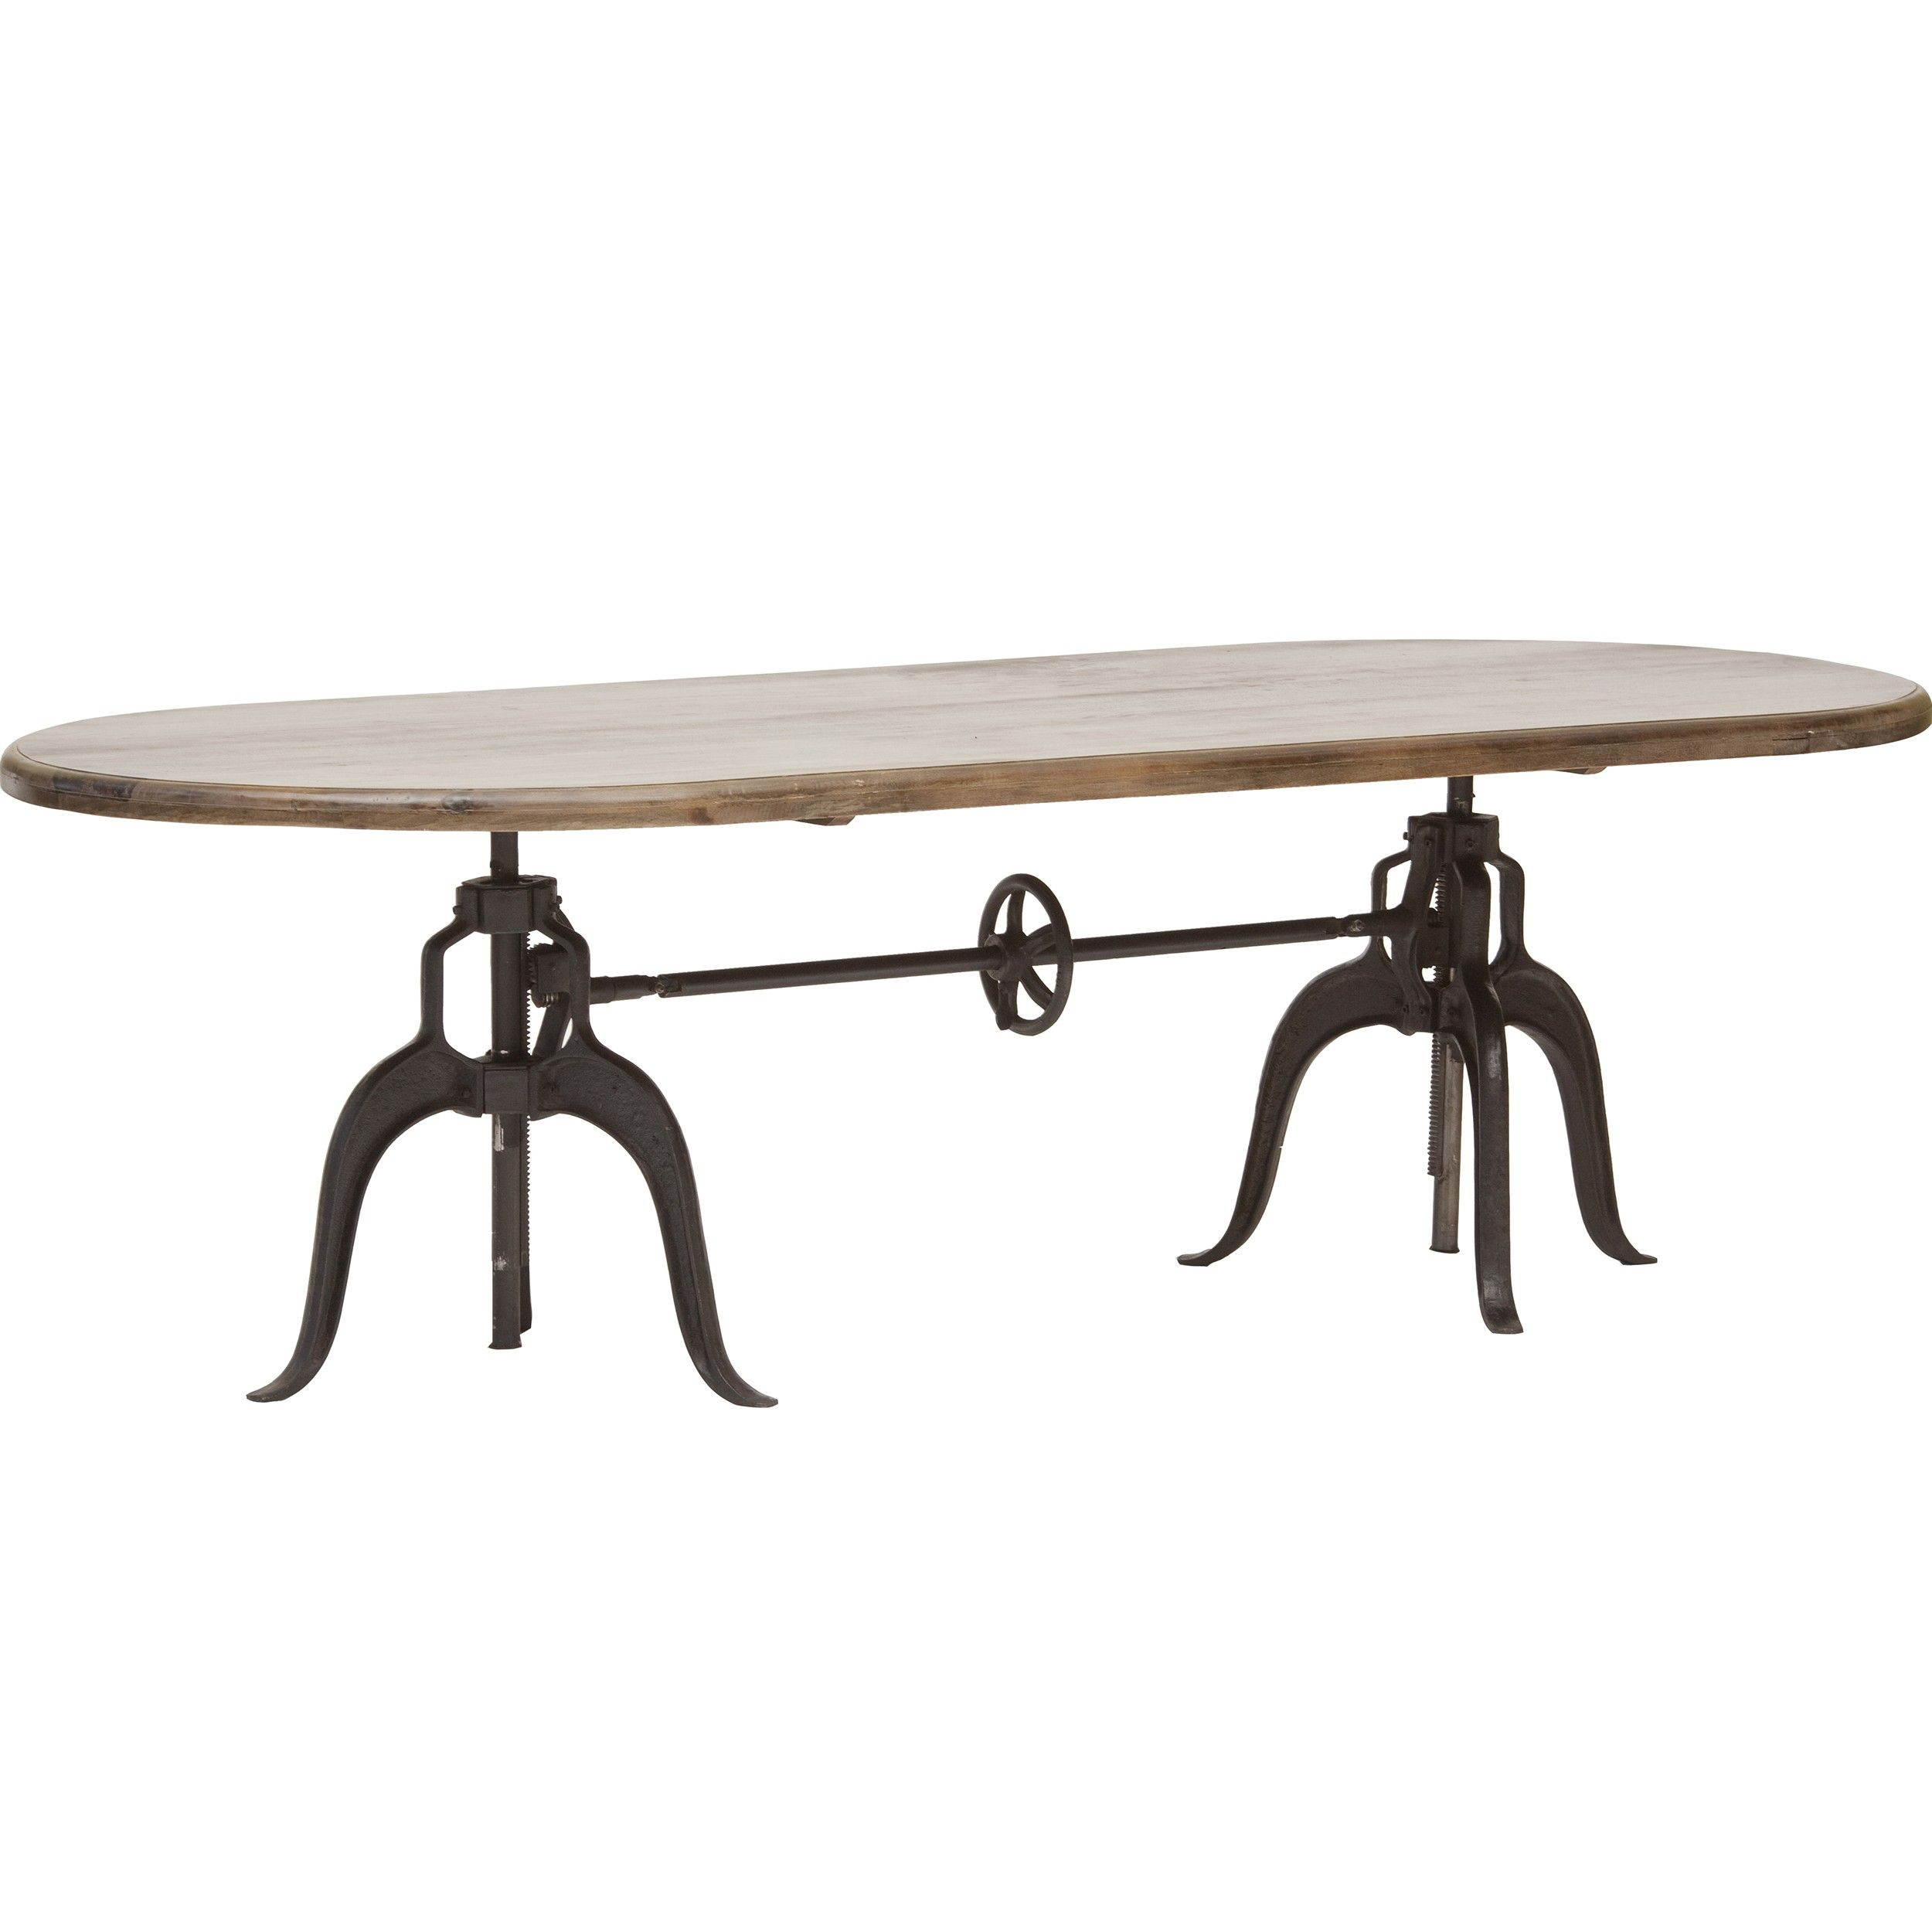 Double crank oval dining table 1 899 00 high fashion home